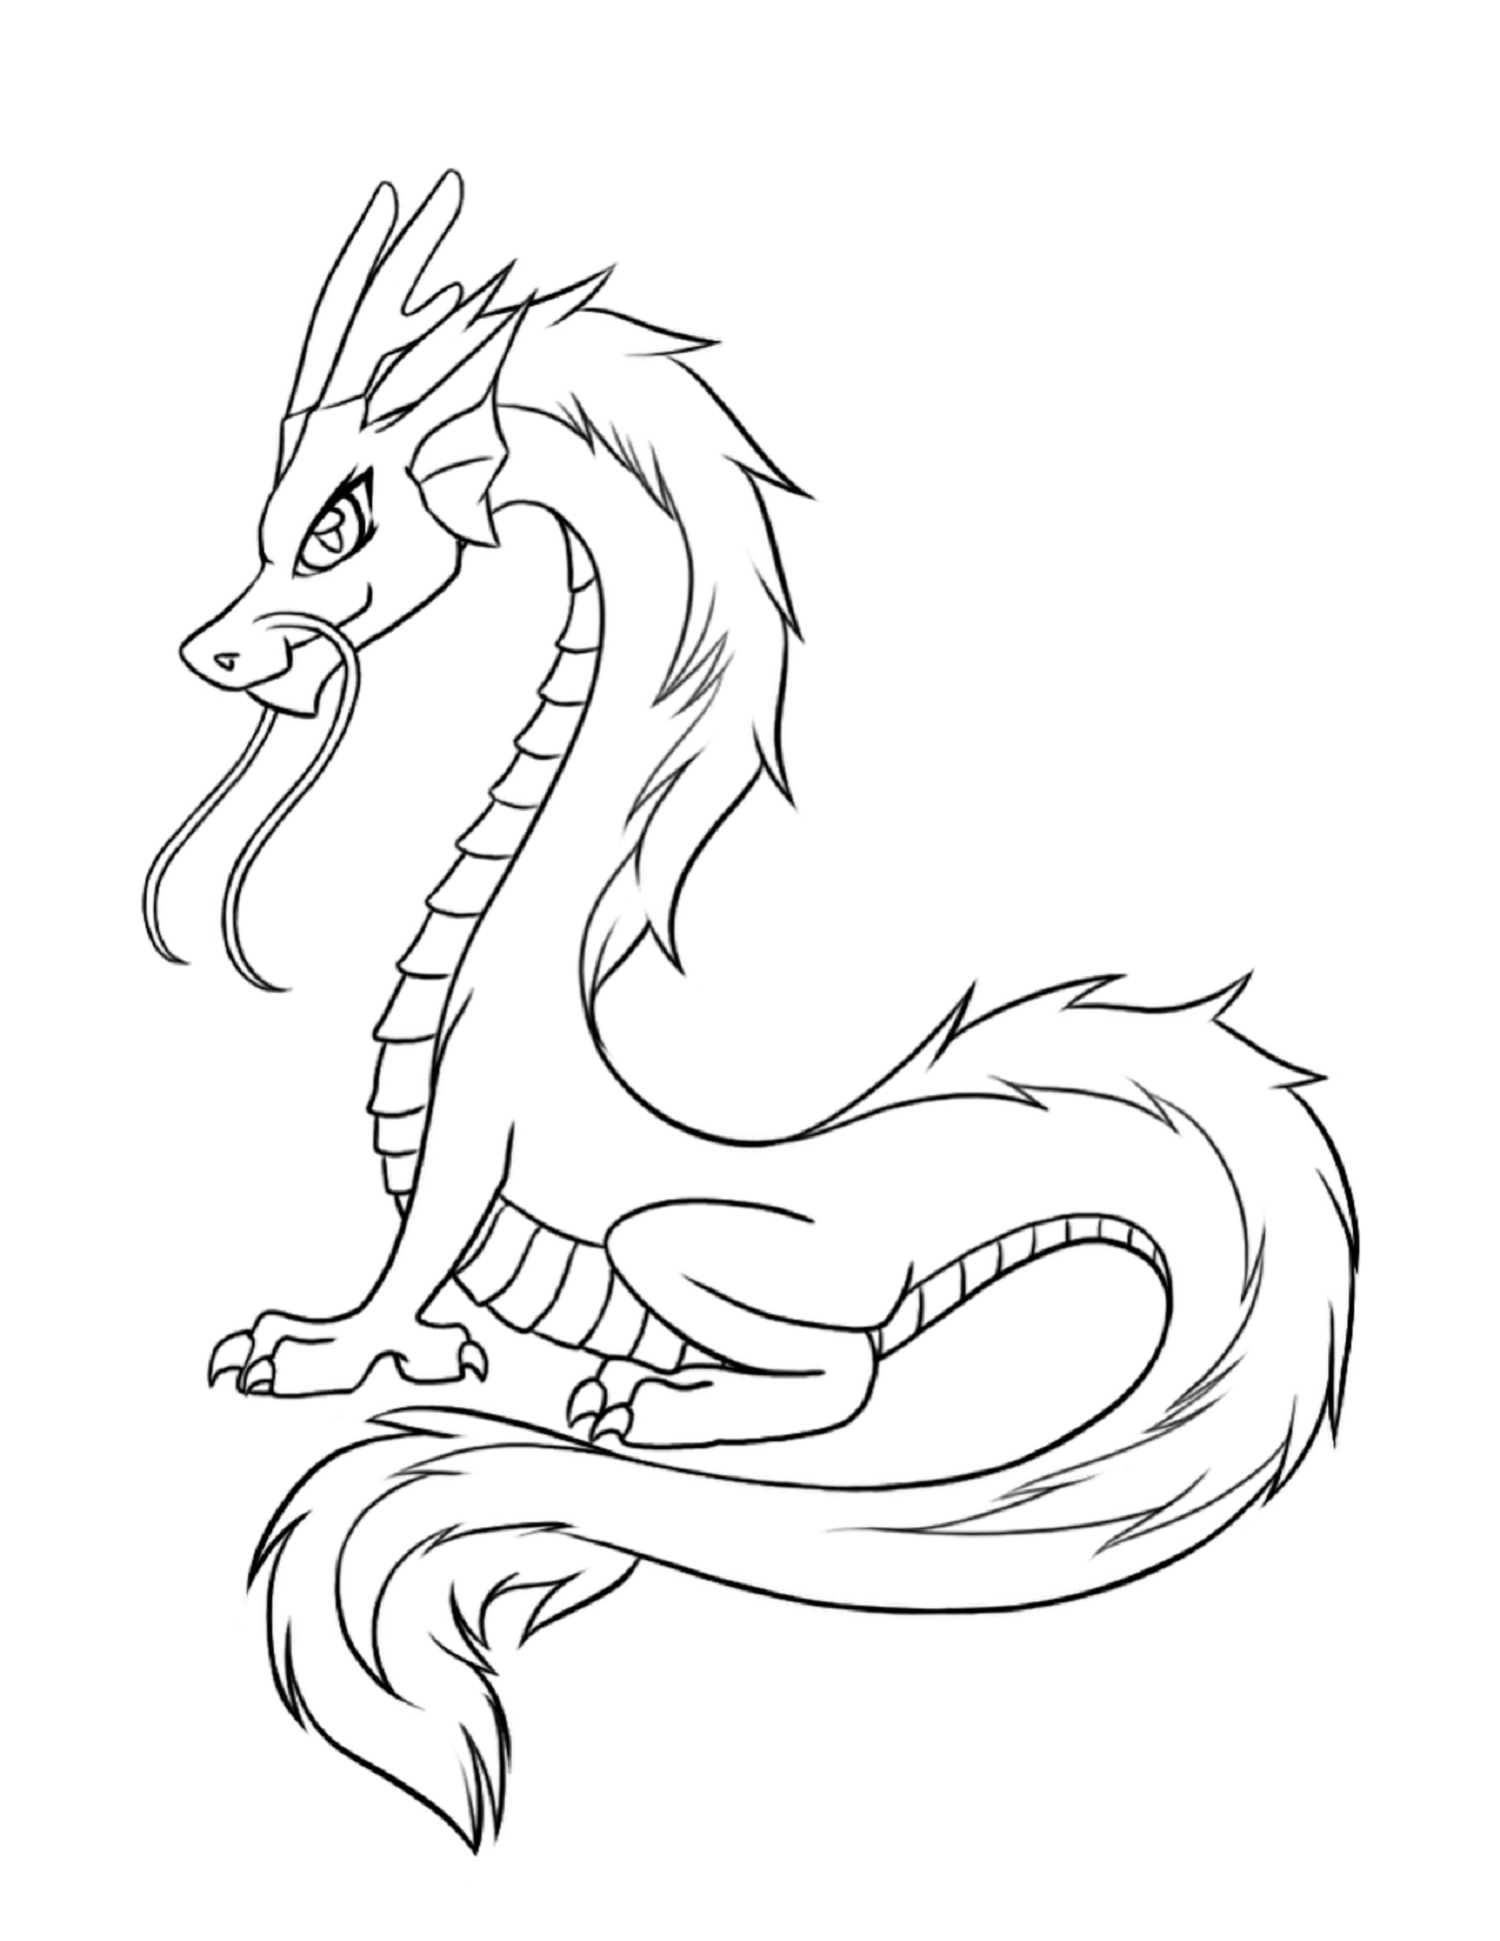 Chinese Dragon Coloring Pages  Download 17k - Free Download